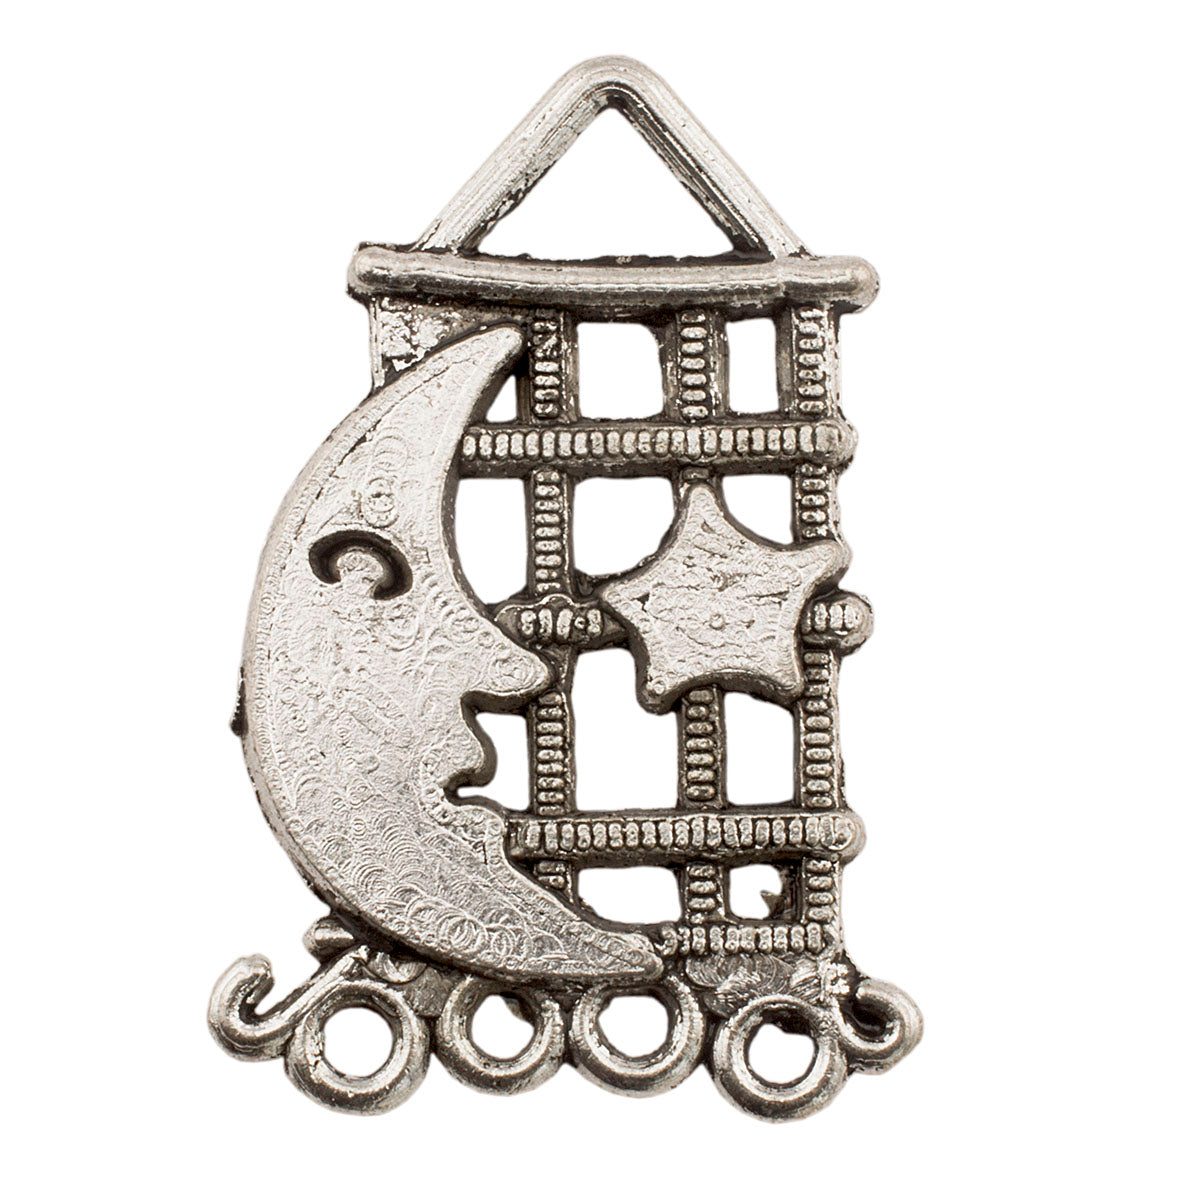 Tibetan Silver Moon and Star Earring Chandlier Charm Pendant